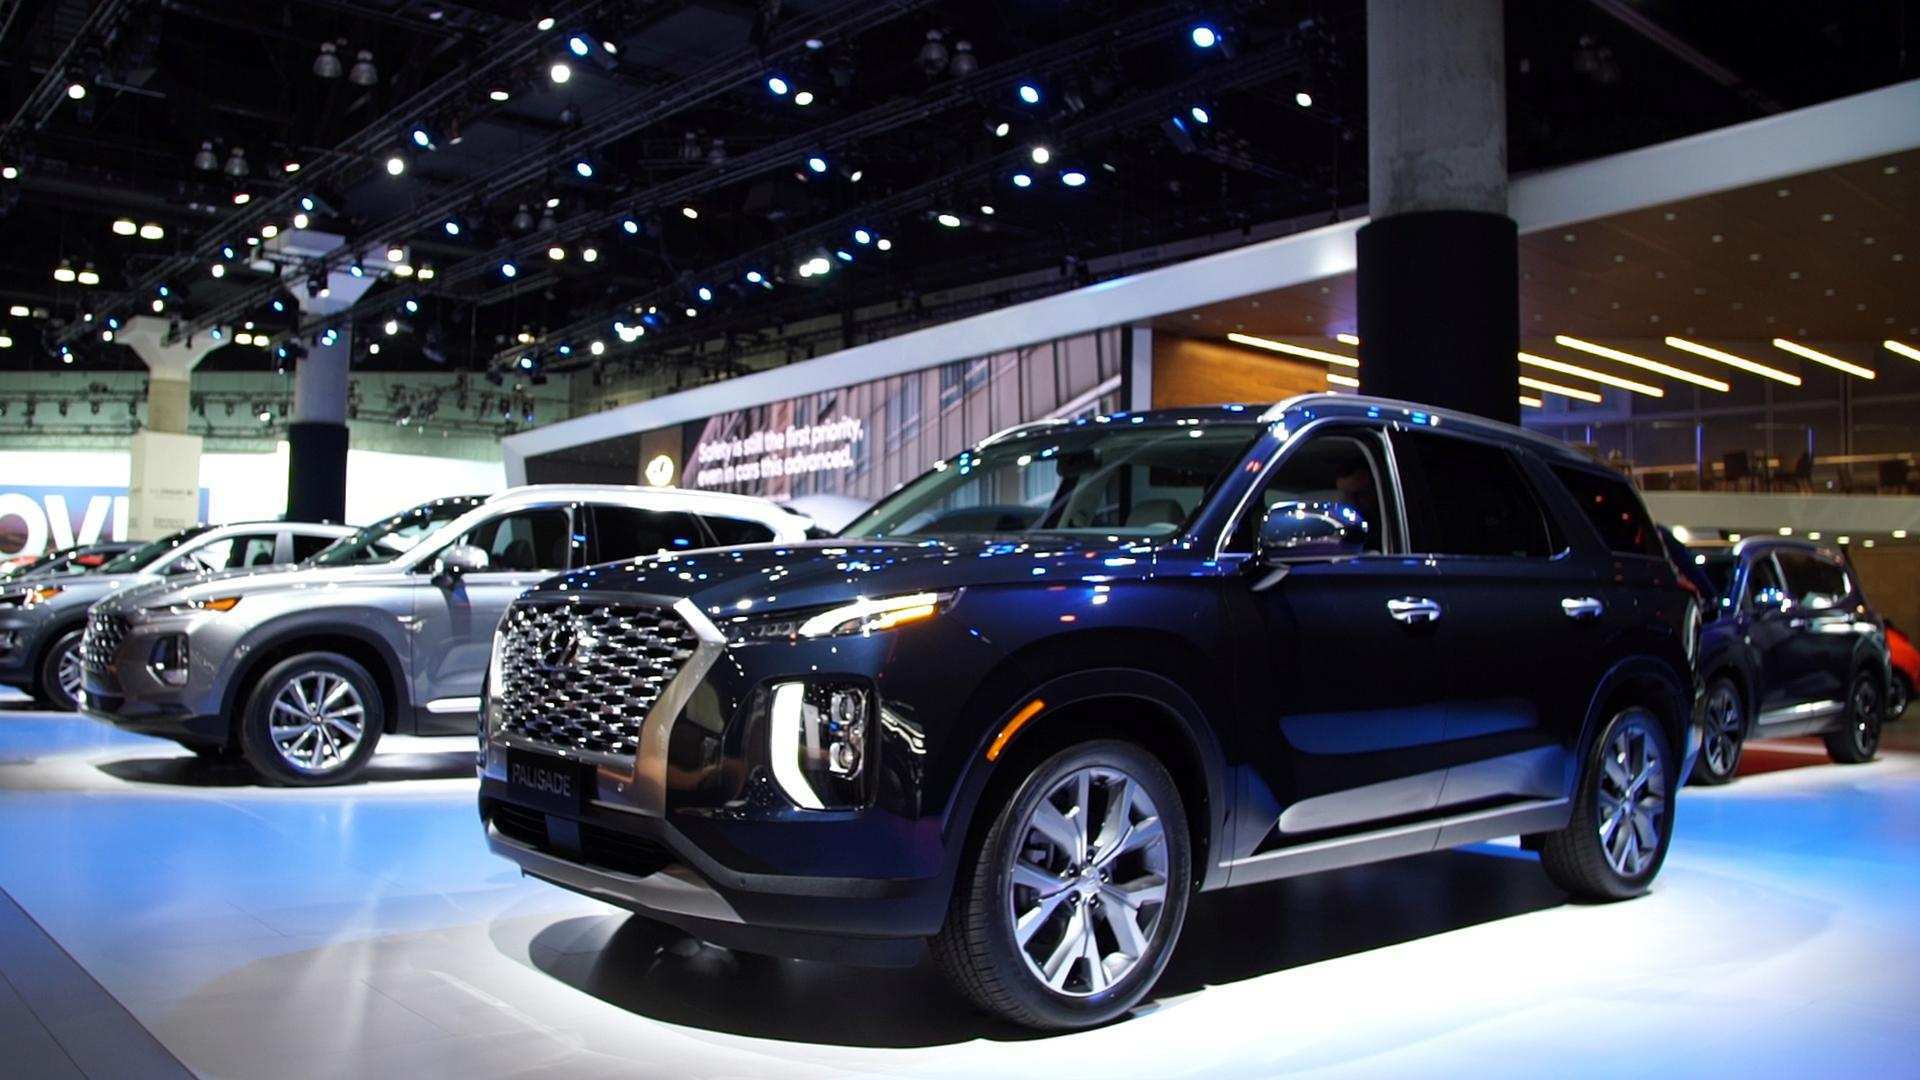 17 All New When Is The 2020 Hyundai Palisade Coming Out Exterior